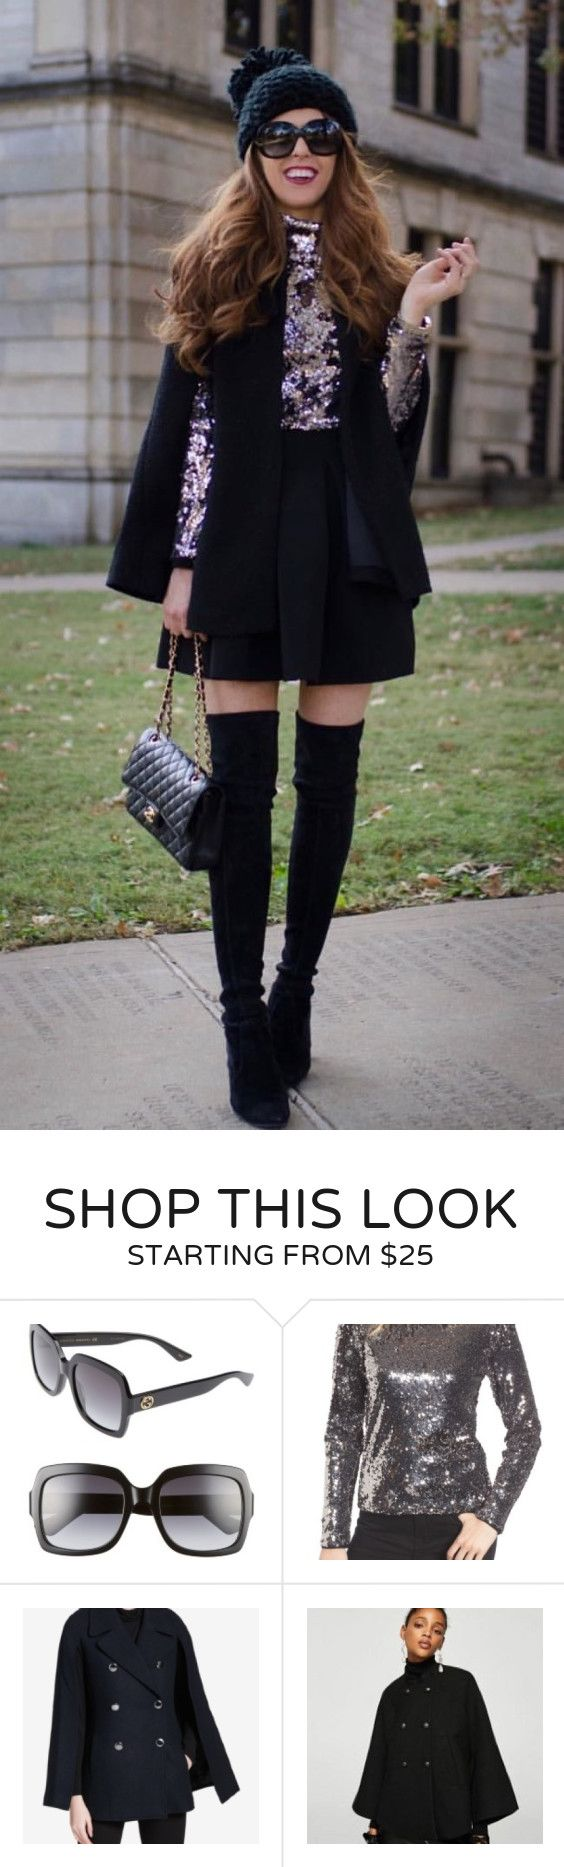 #fall #outfits women's black blazer and black mini skirt. Click To Shop This Look.